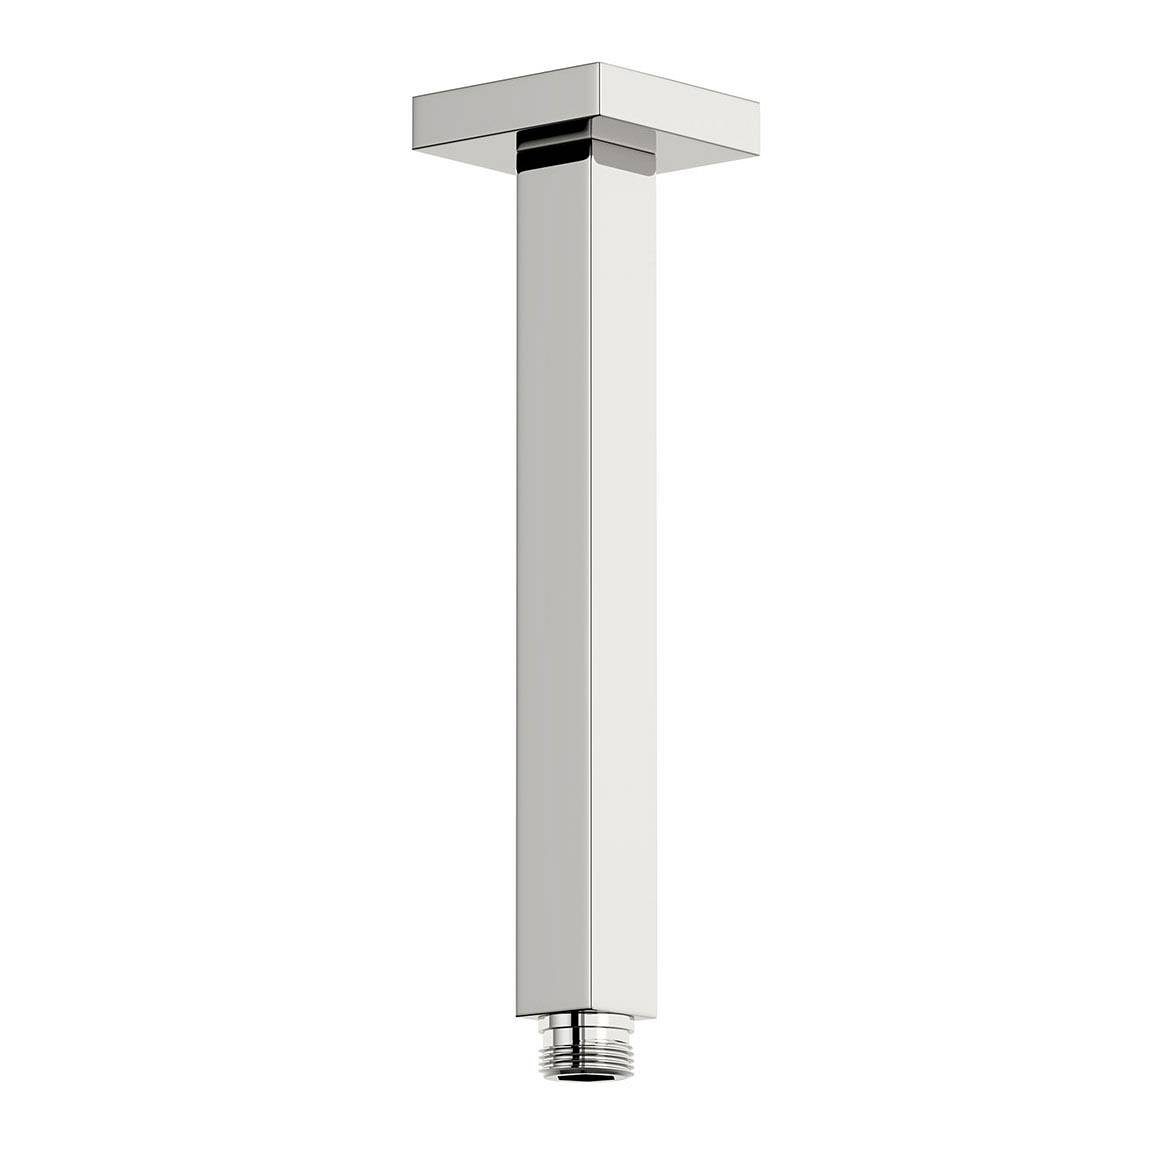 Image of Ceiling Shower Arm 200mm Square